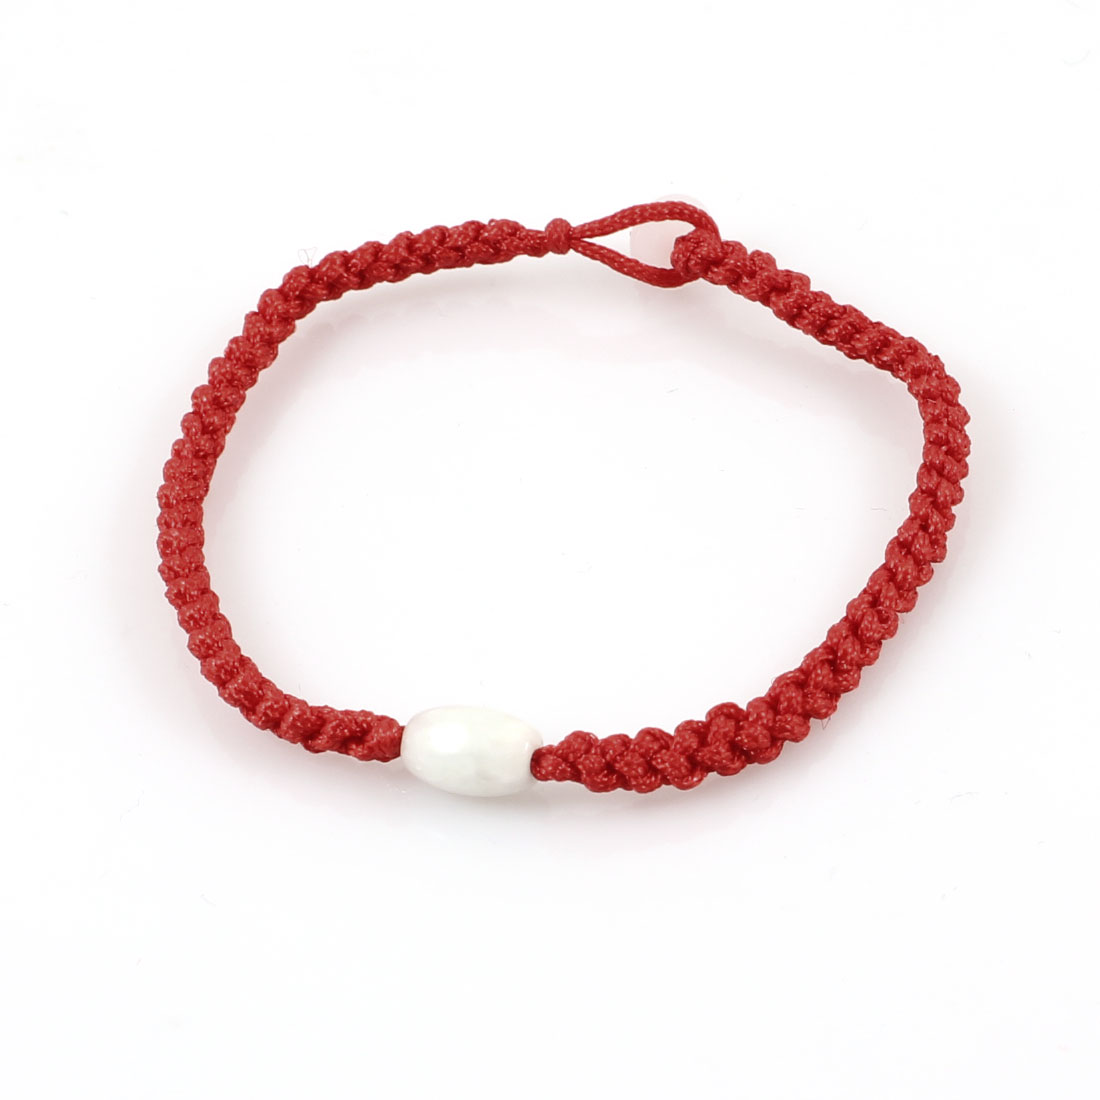 Red String Twisted Plastic Oval Bead Decoration Bracelet Bangle for Lady